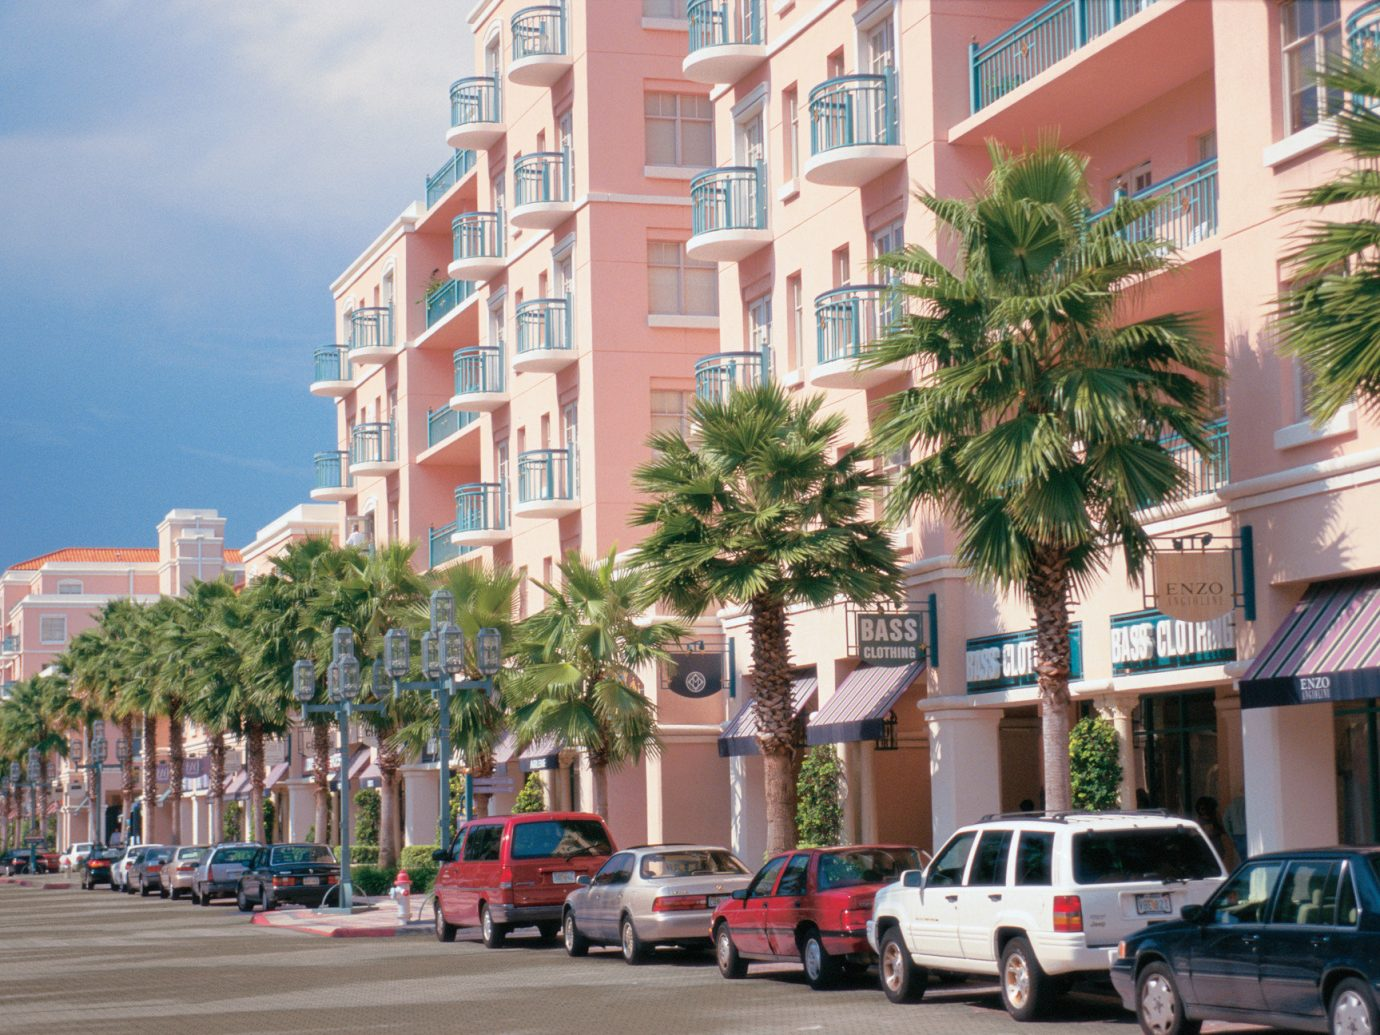 palm trees shopping streets Trip Ideas outdoor road condominium property neighbourhood Town residential area City building Downtown human settlement plaza street tower block facade apartment